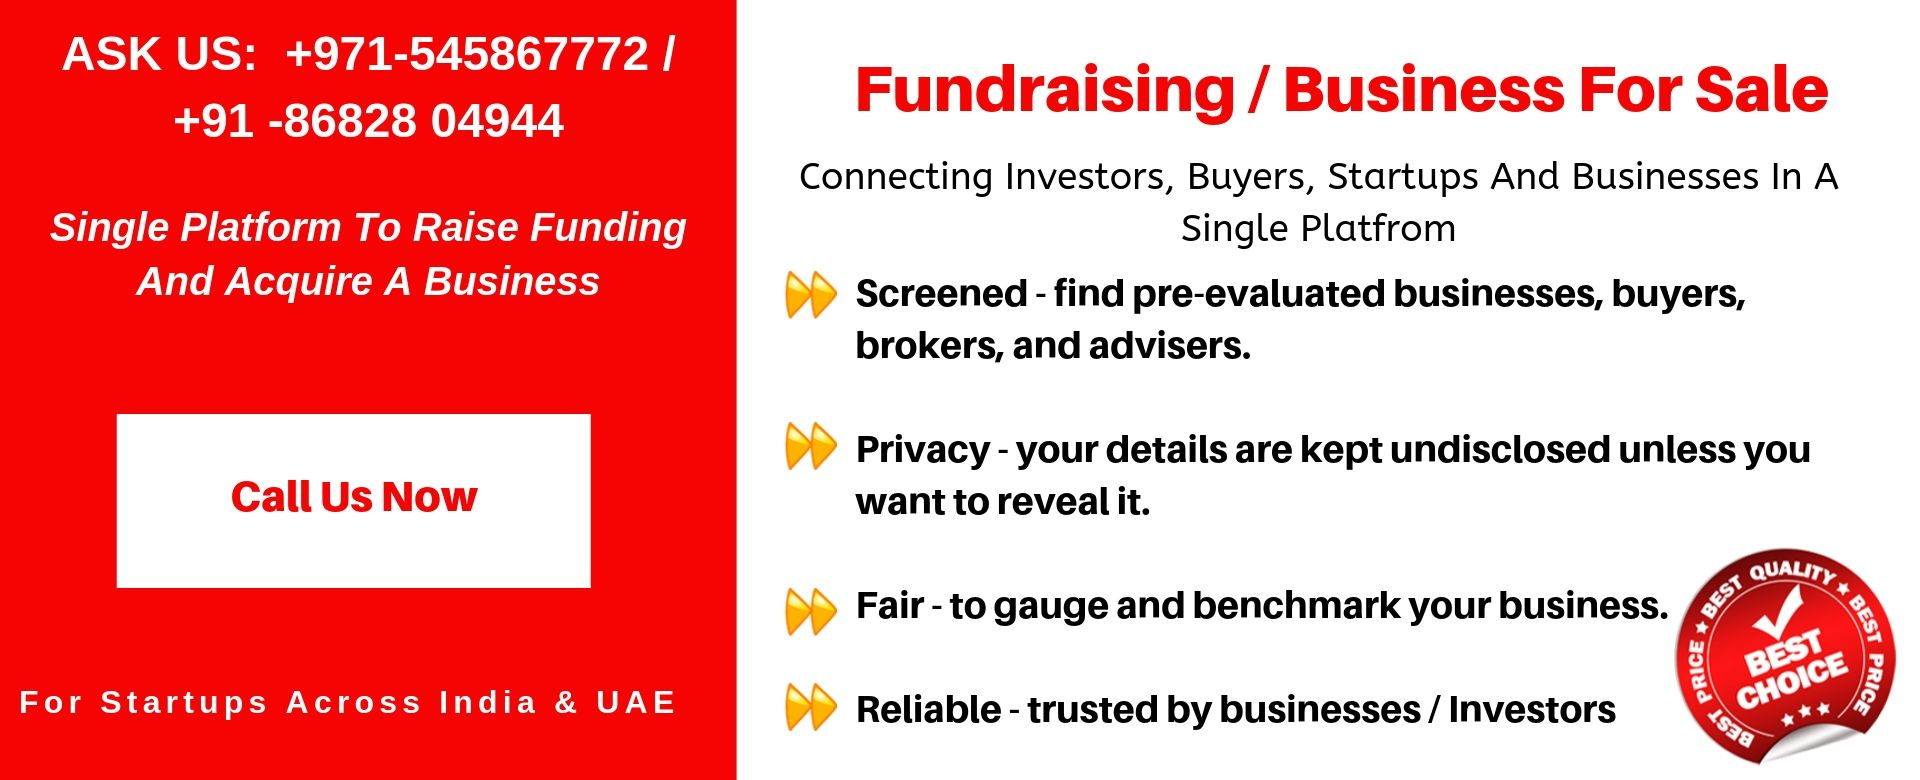 fundraising business sell